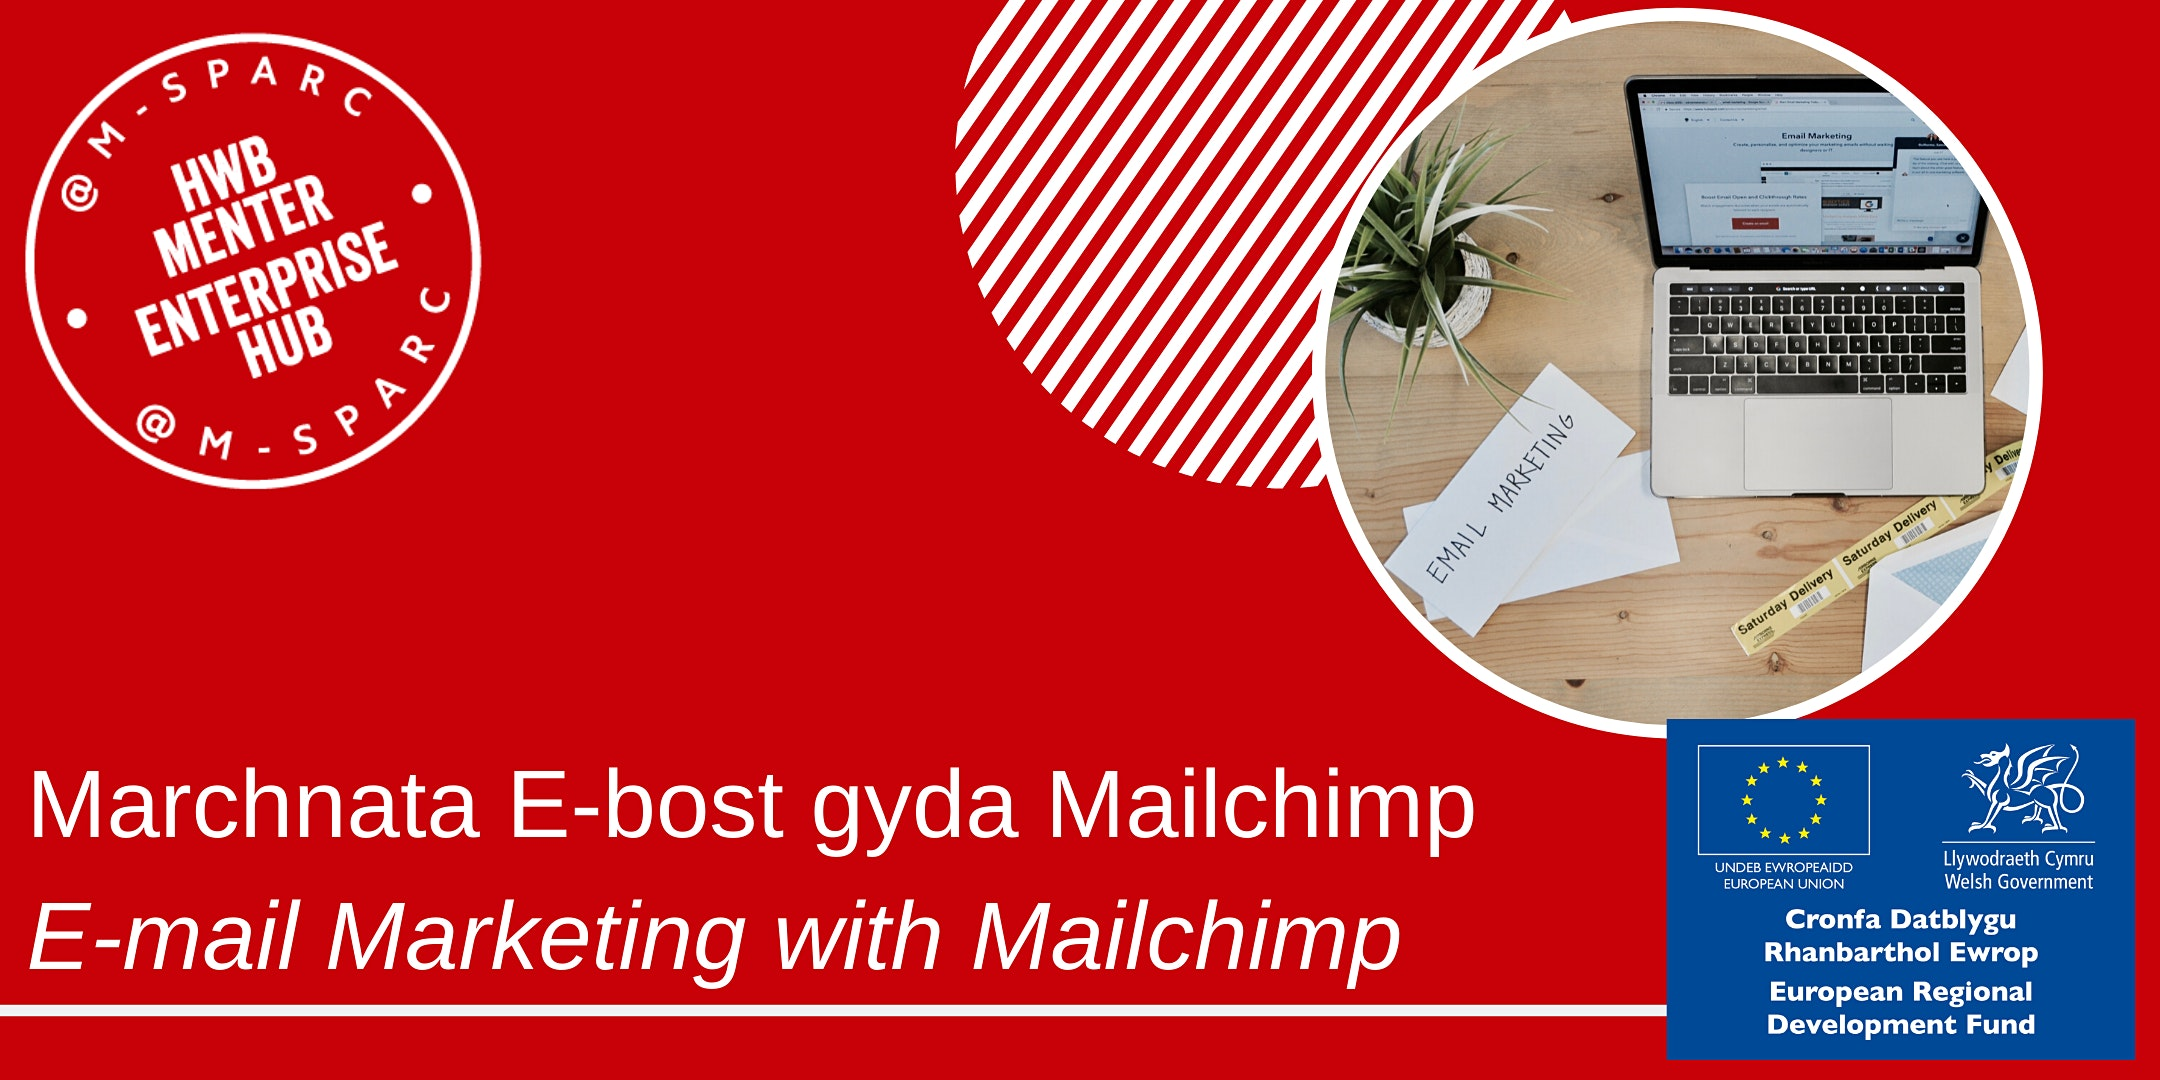 Covid 19: Marchnata E-bost gyda Mailchimp / E-mail Marketing with Mailchimp